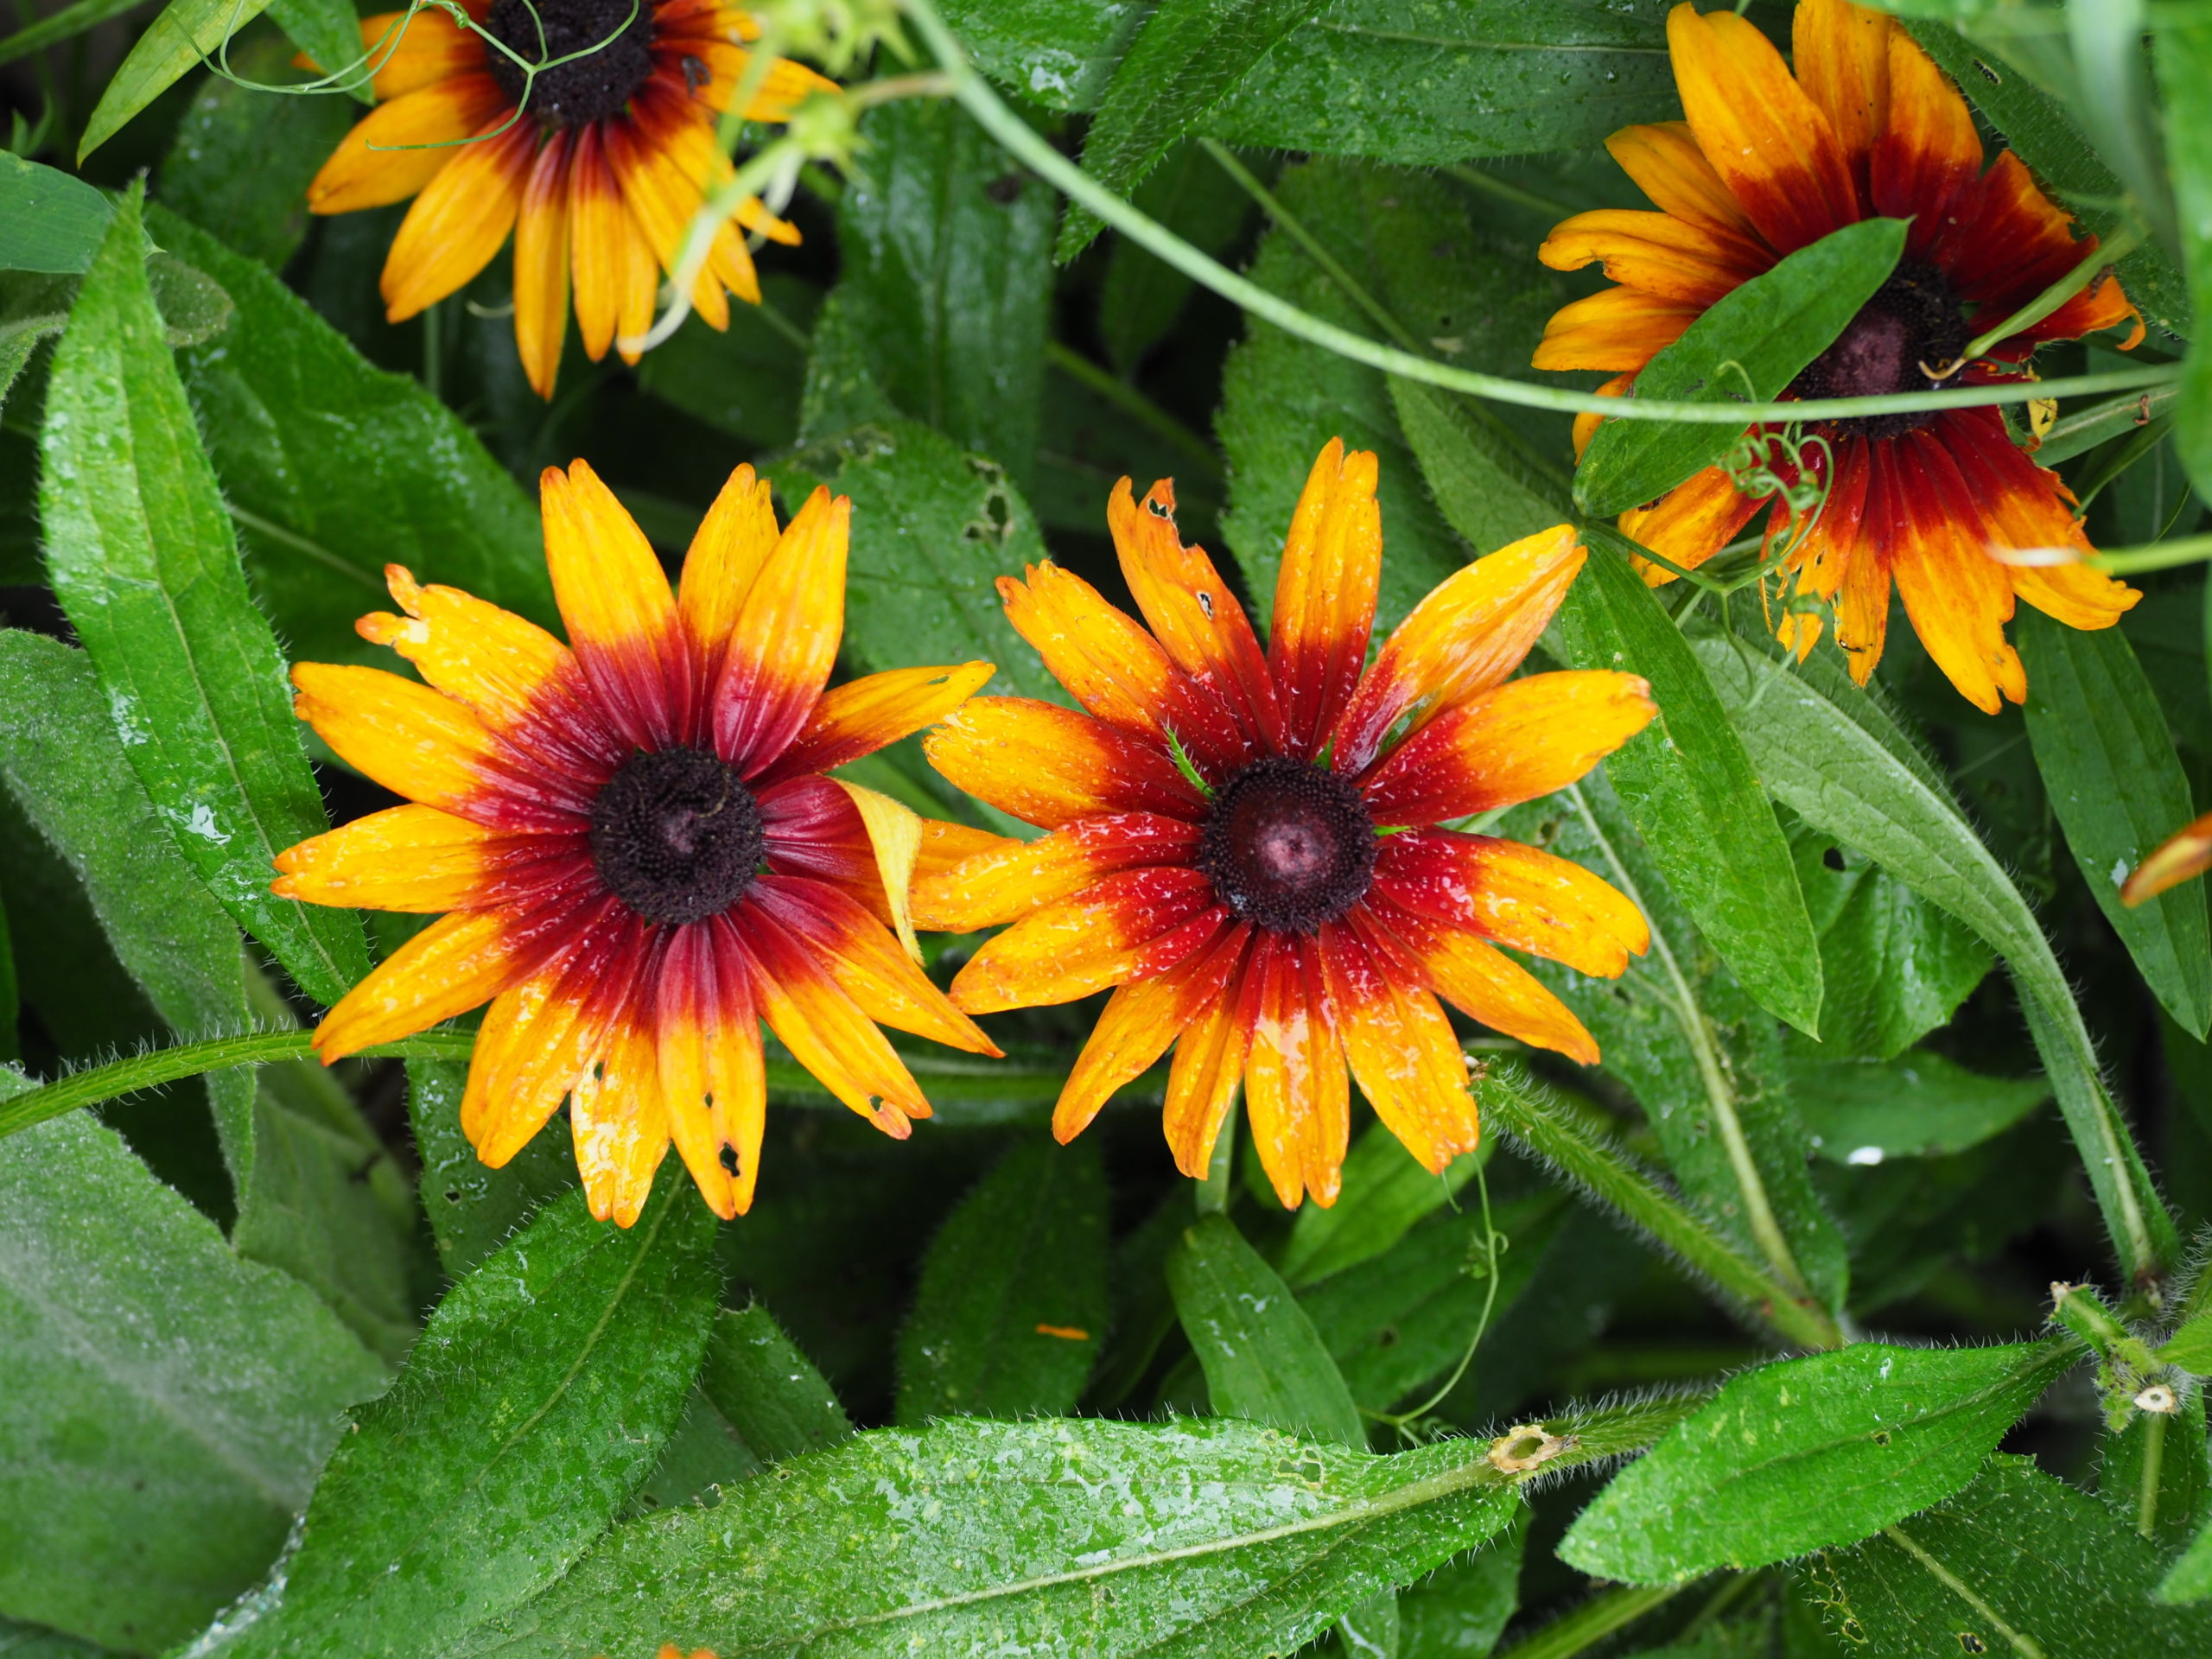 Many Rudbeckias put on a great fall show, but this variety, Cappuccino, flowers all summer and into the fall. The mature plant is about 2 feet wide with flowers on 10-to-15-inch stems. Also great for cuts.